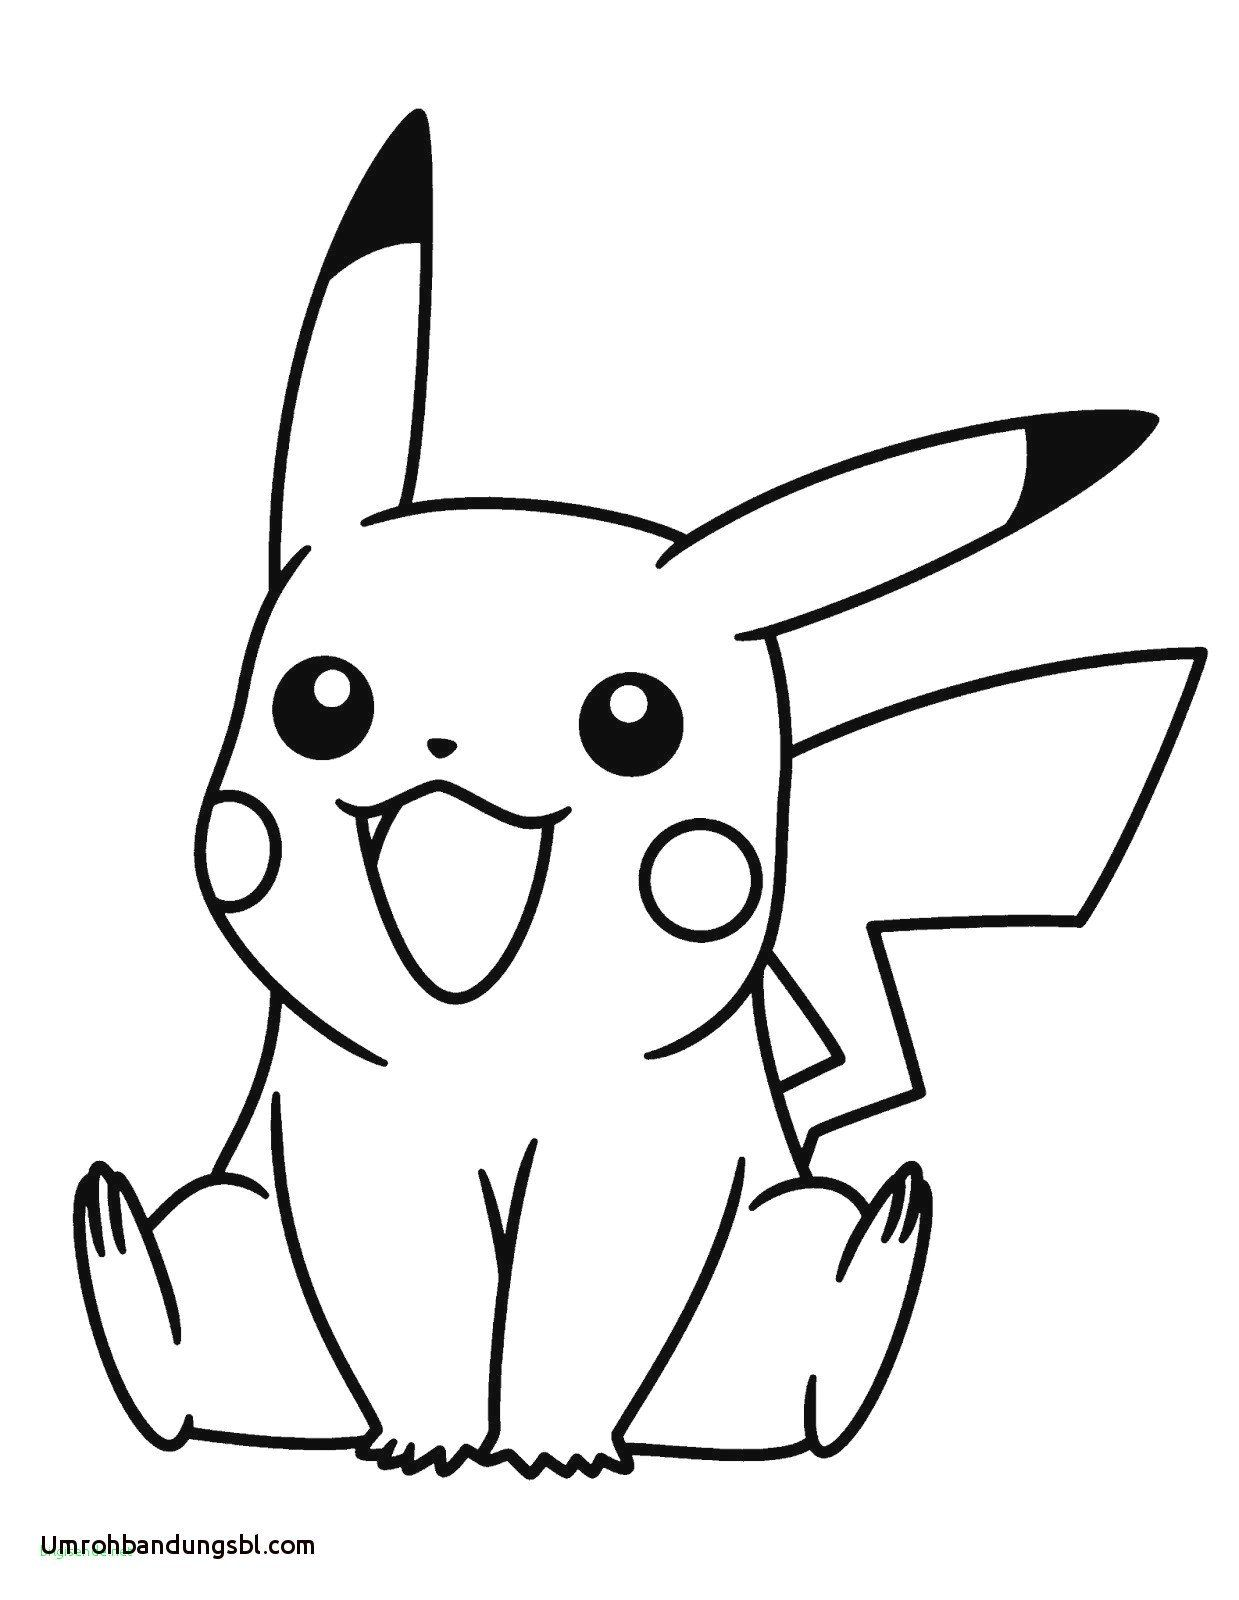 Nice Pokemon Coloring Pages Coloring Pages Check More At Http Www Mcoloring Com Index Ph Pokemon Coloring Sheets Cute Coloring Pages Pokemon Coloring Pages